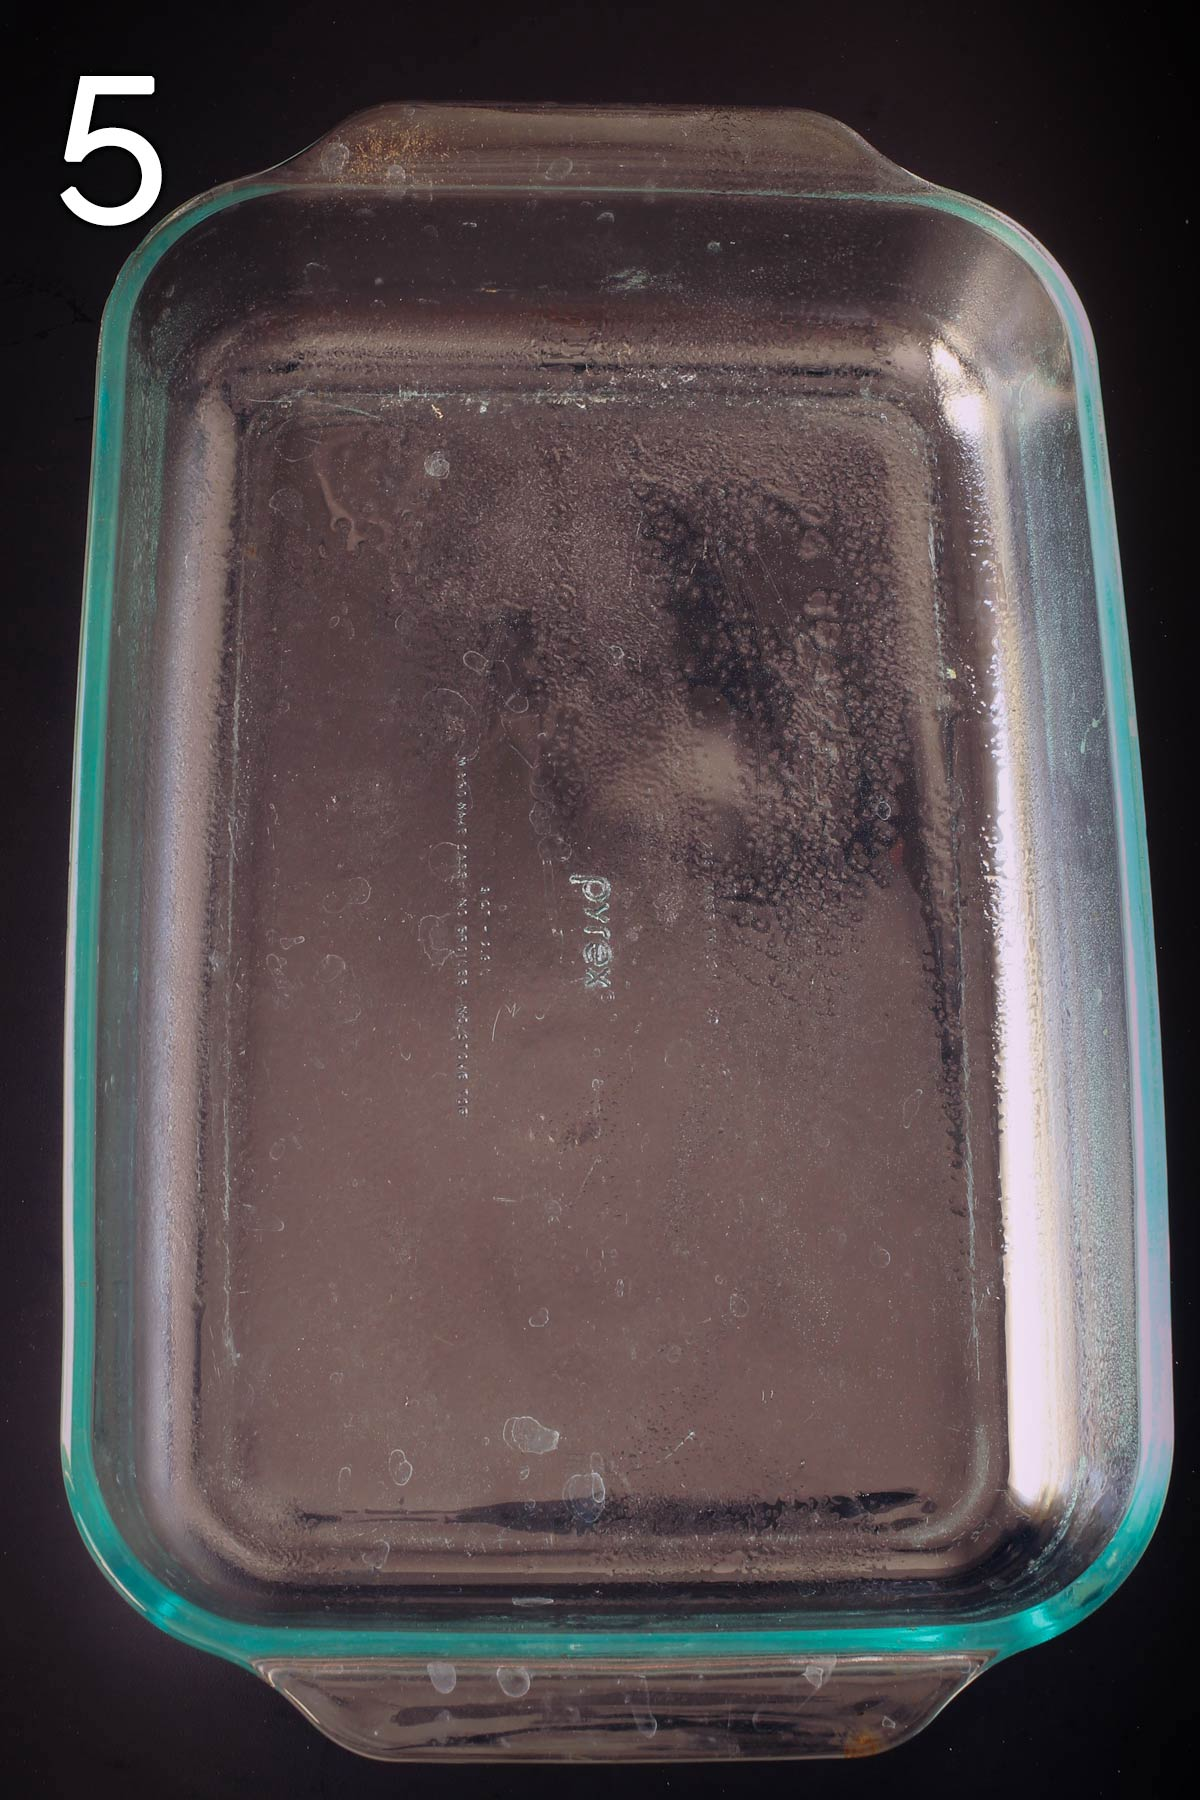 greased 9x13-inch baking dish on black tabletop.